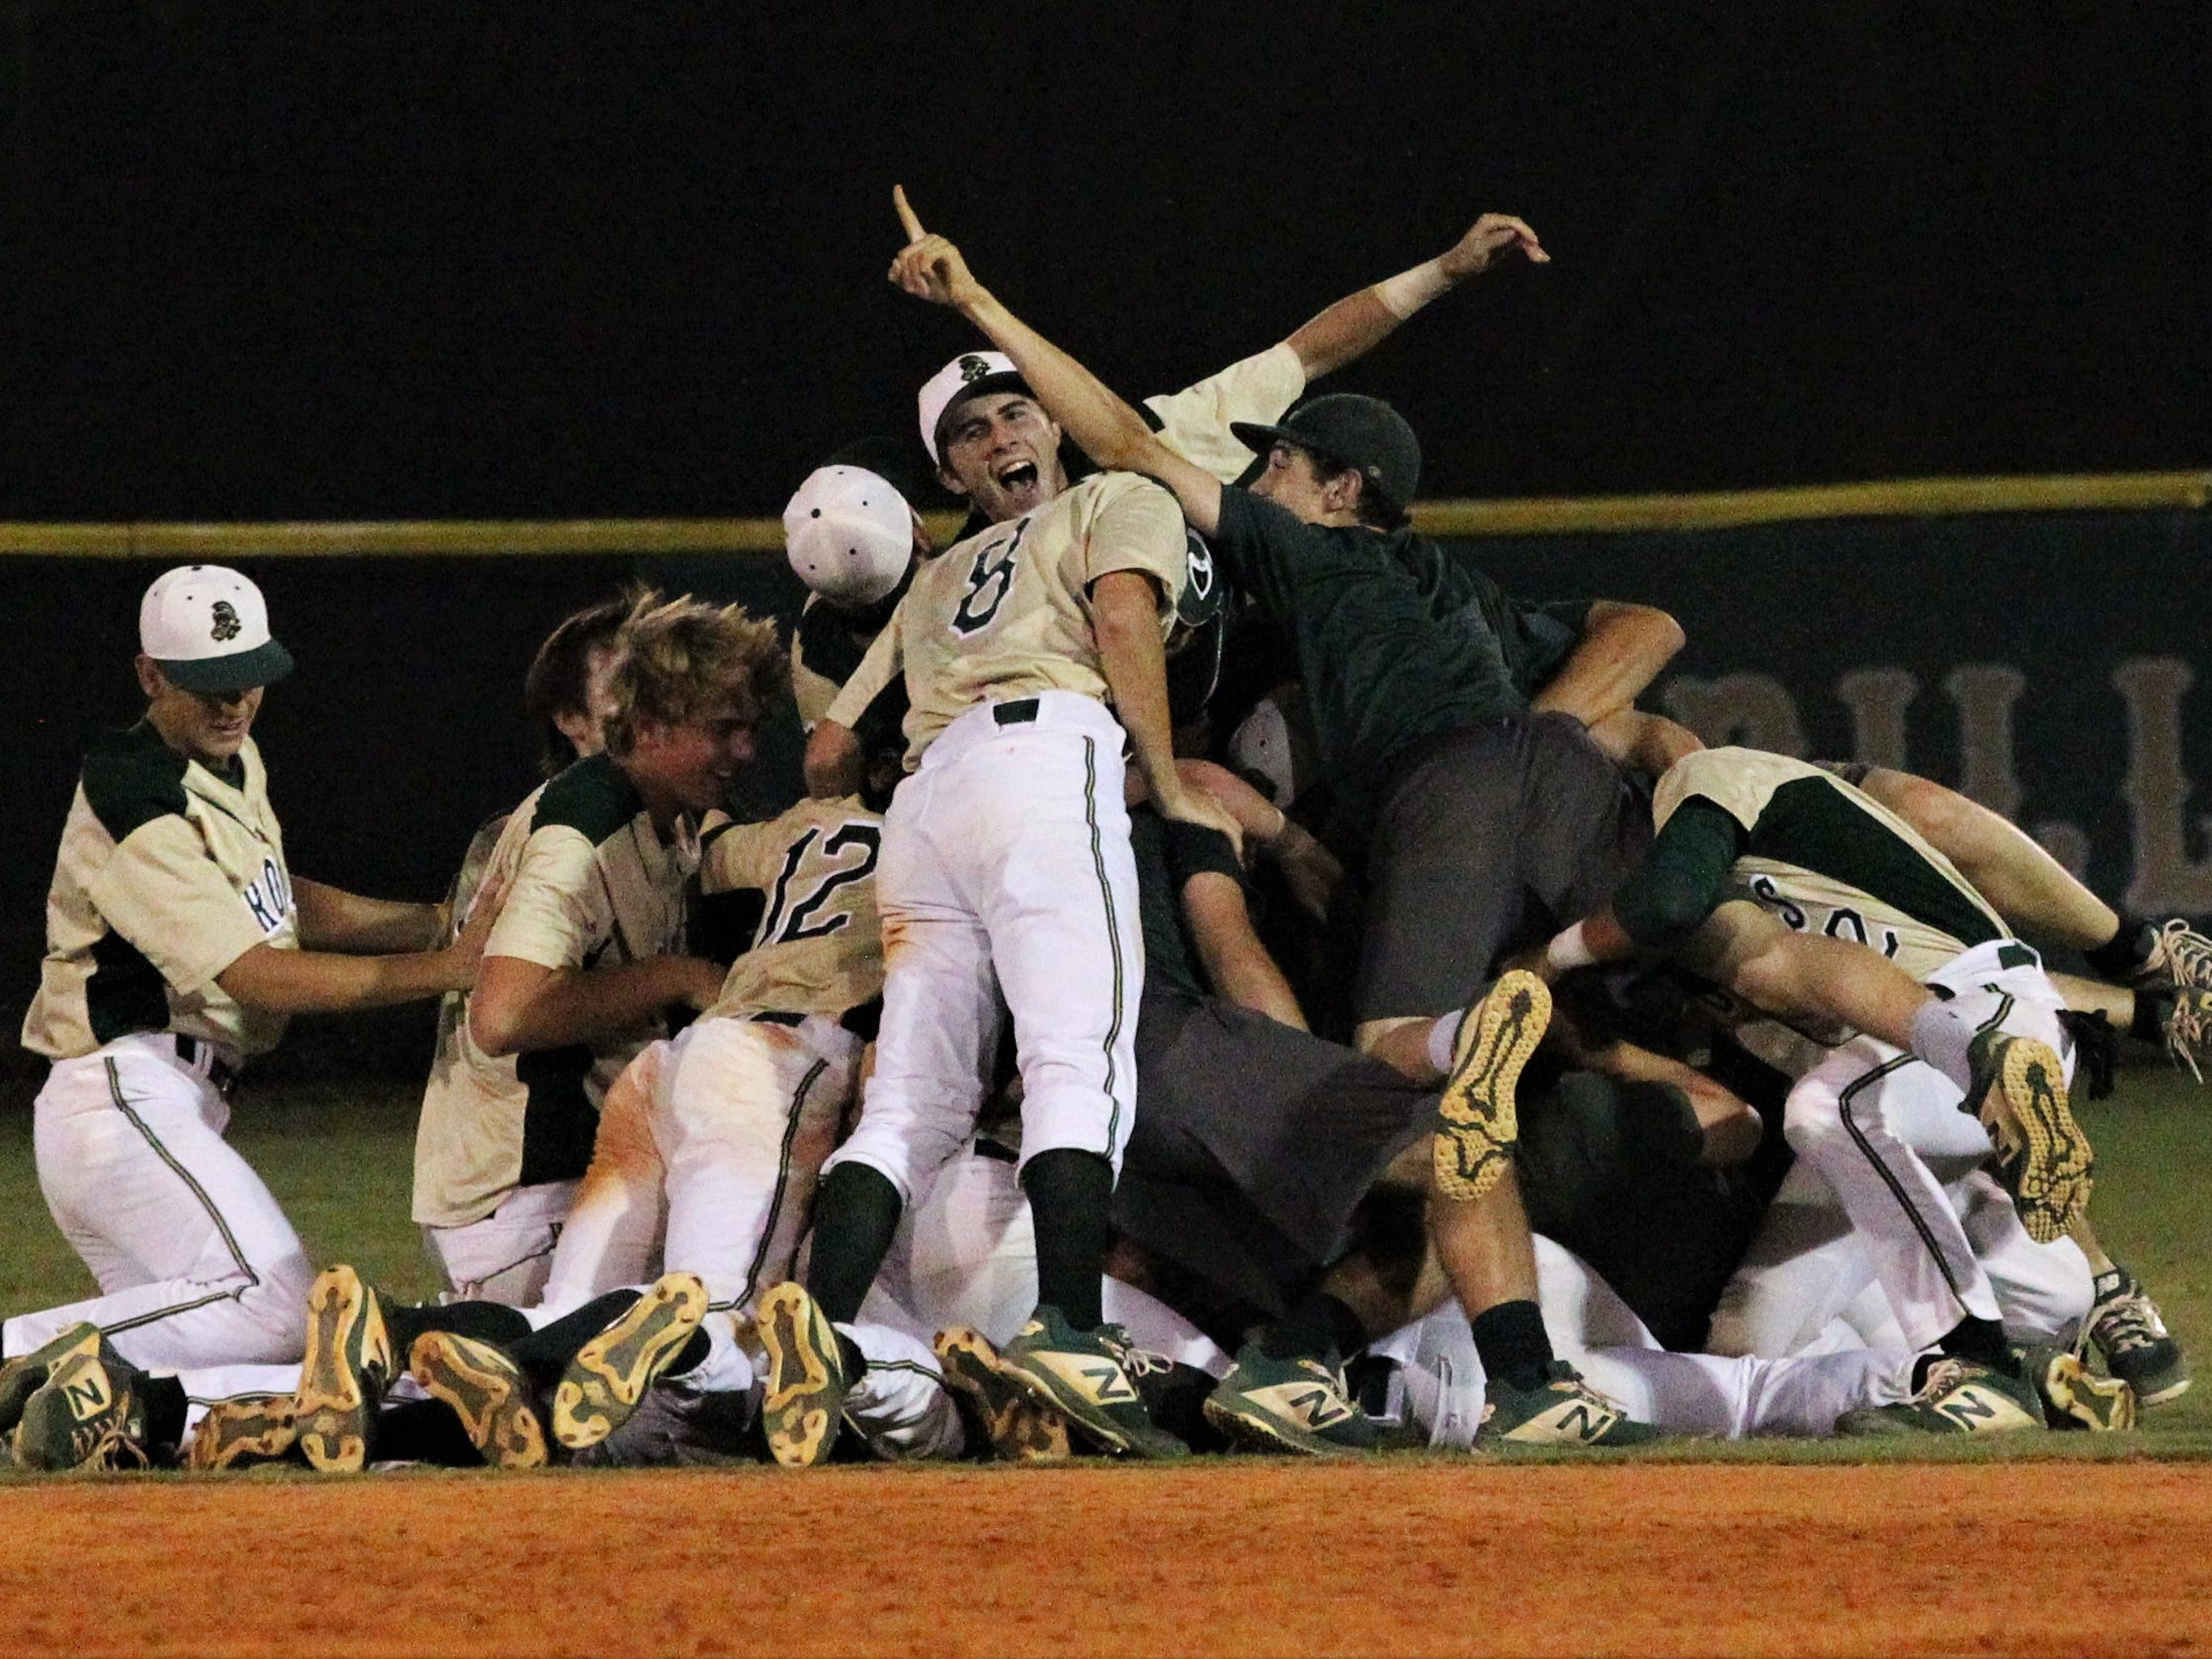 Lincoln baseball players dog-pile Justin Bragdon after a walk-off hit as the Trojans beat Chiles 5-4  in 10 innings during a District 2-8A championship game on Thursday, May 9, 2019.